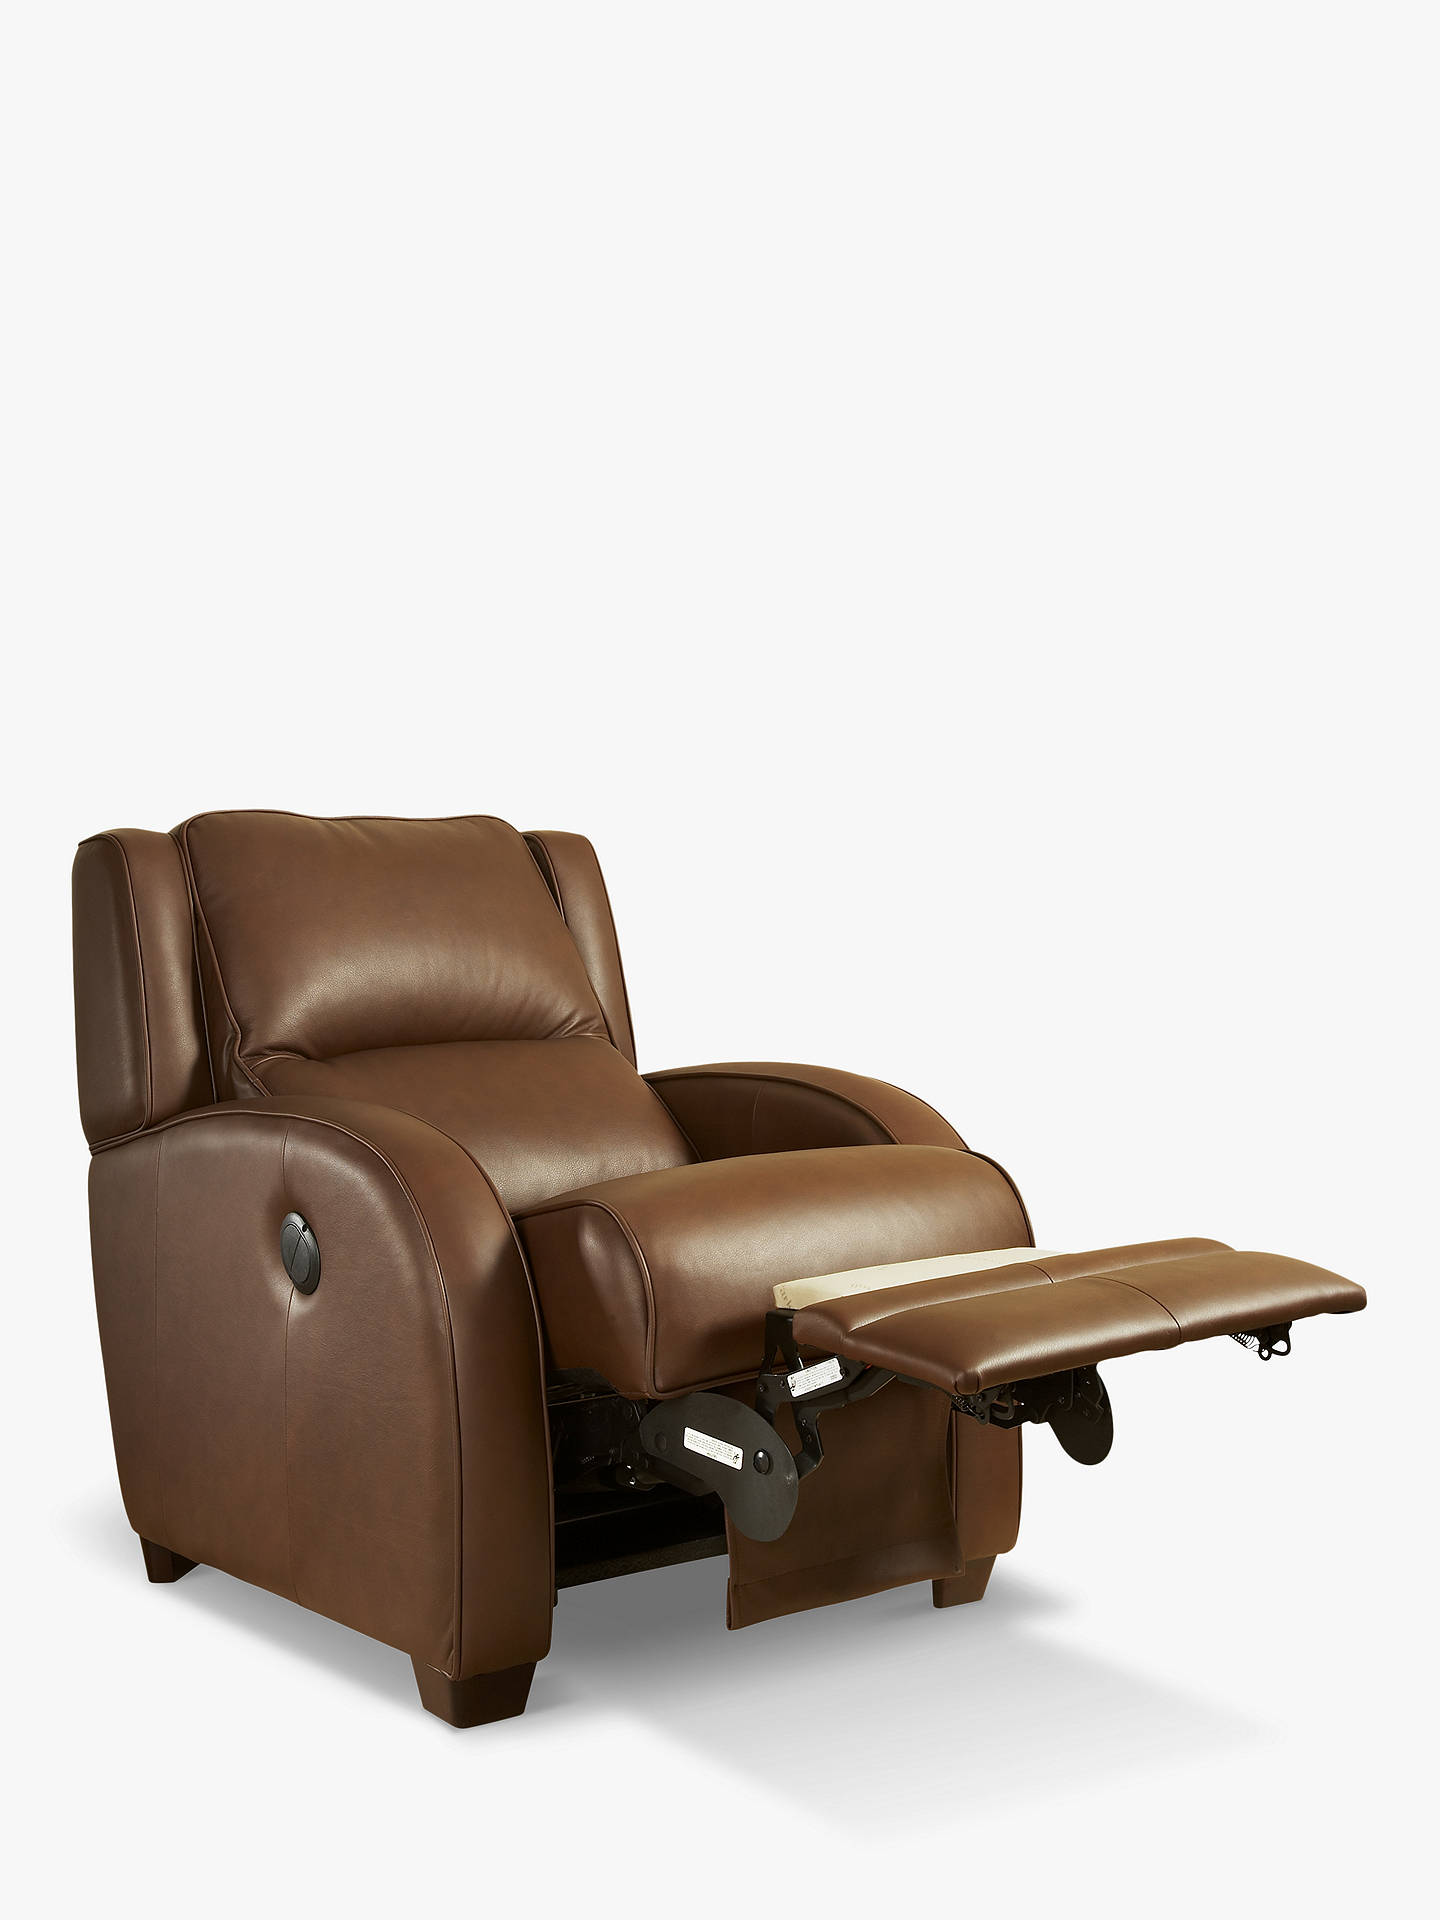 Incredible Parker Knoll Charleston Power Recliner Leather Armchair Como Oak Ibusinesslaw Wood Chair Design Ideas Ibusinesslaworg